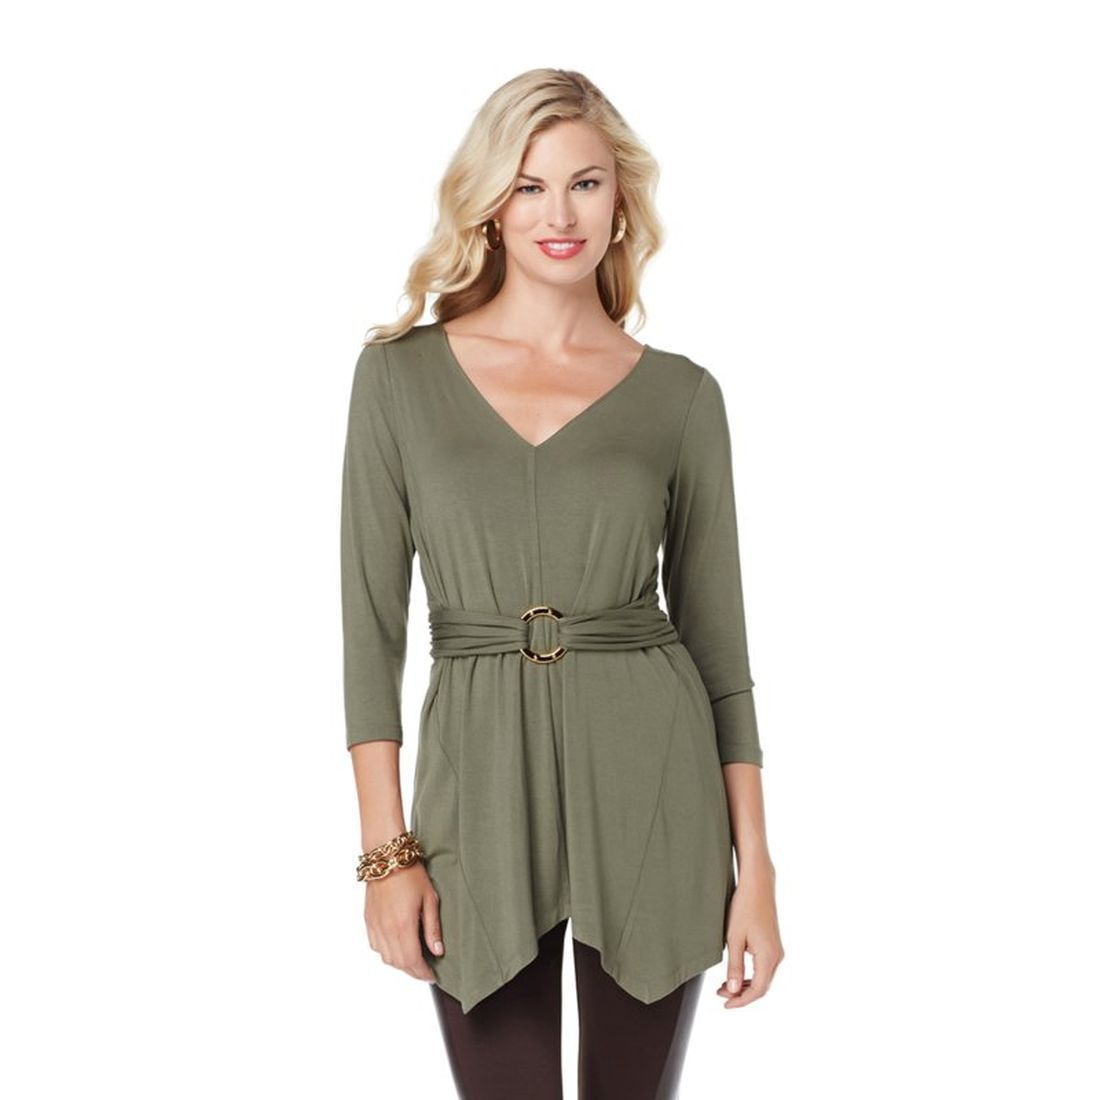 Liz Lange Fashionable Trendy Pretty Handkerchief Hem Top Olive M NEW 346-837 | eBay